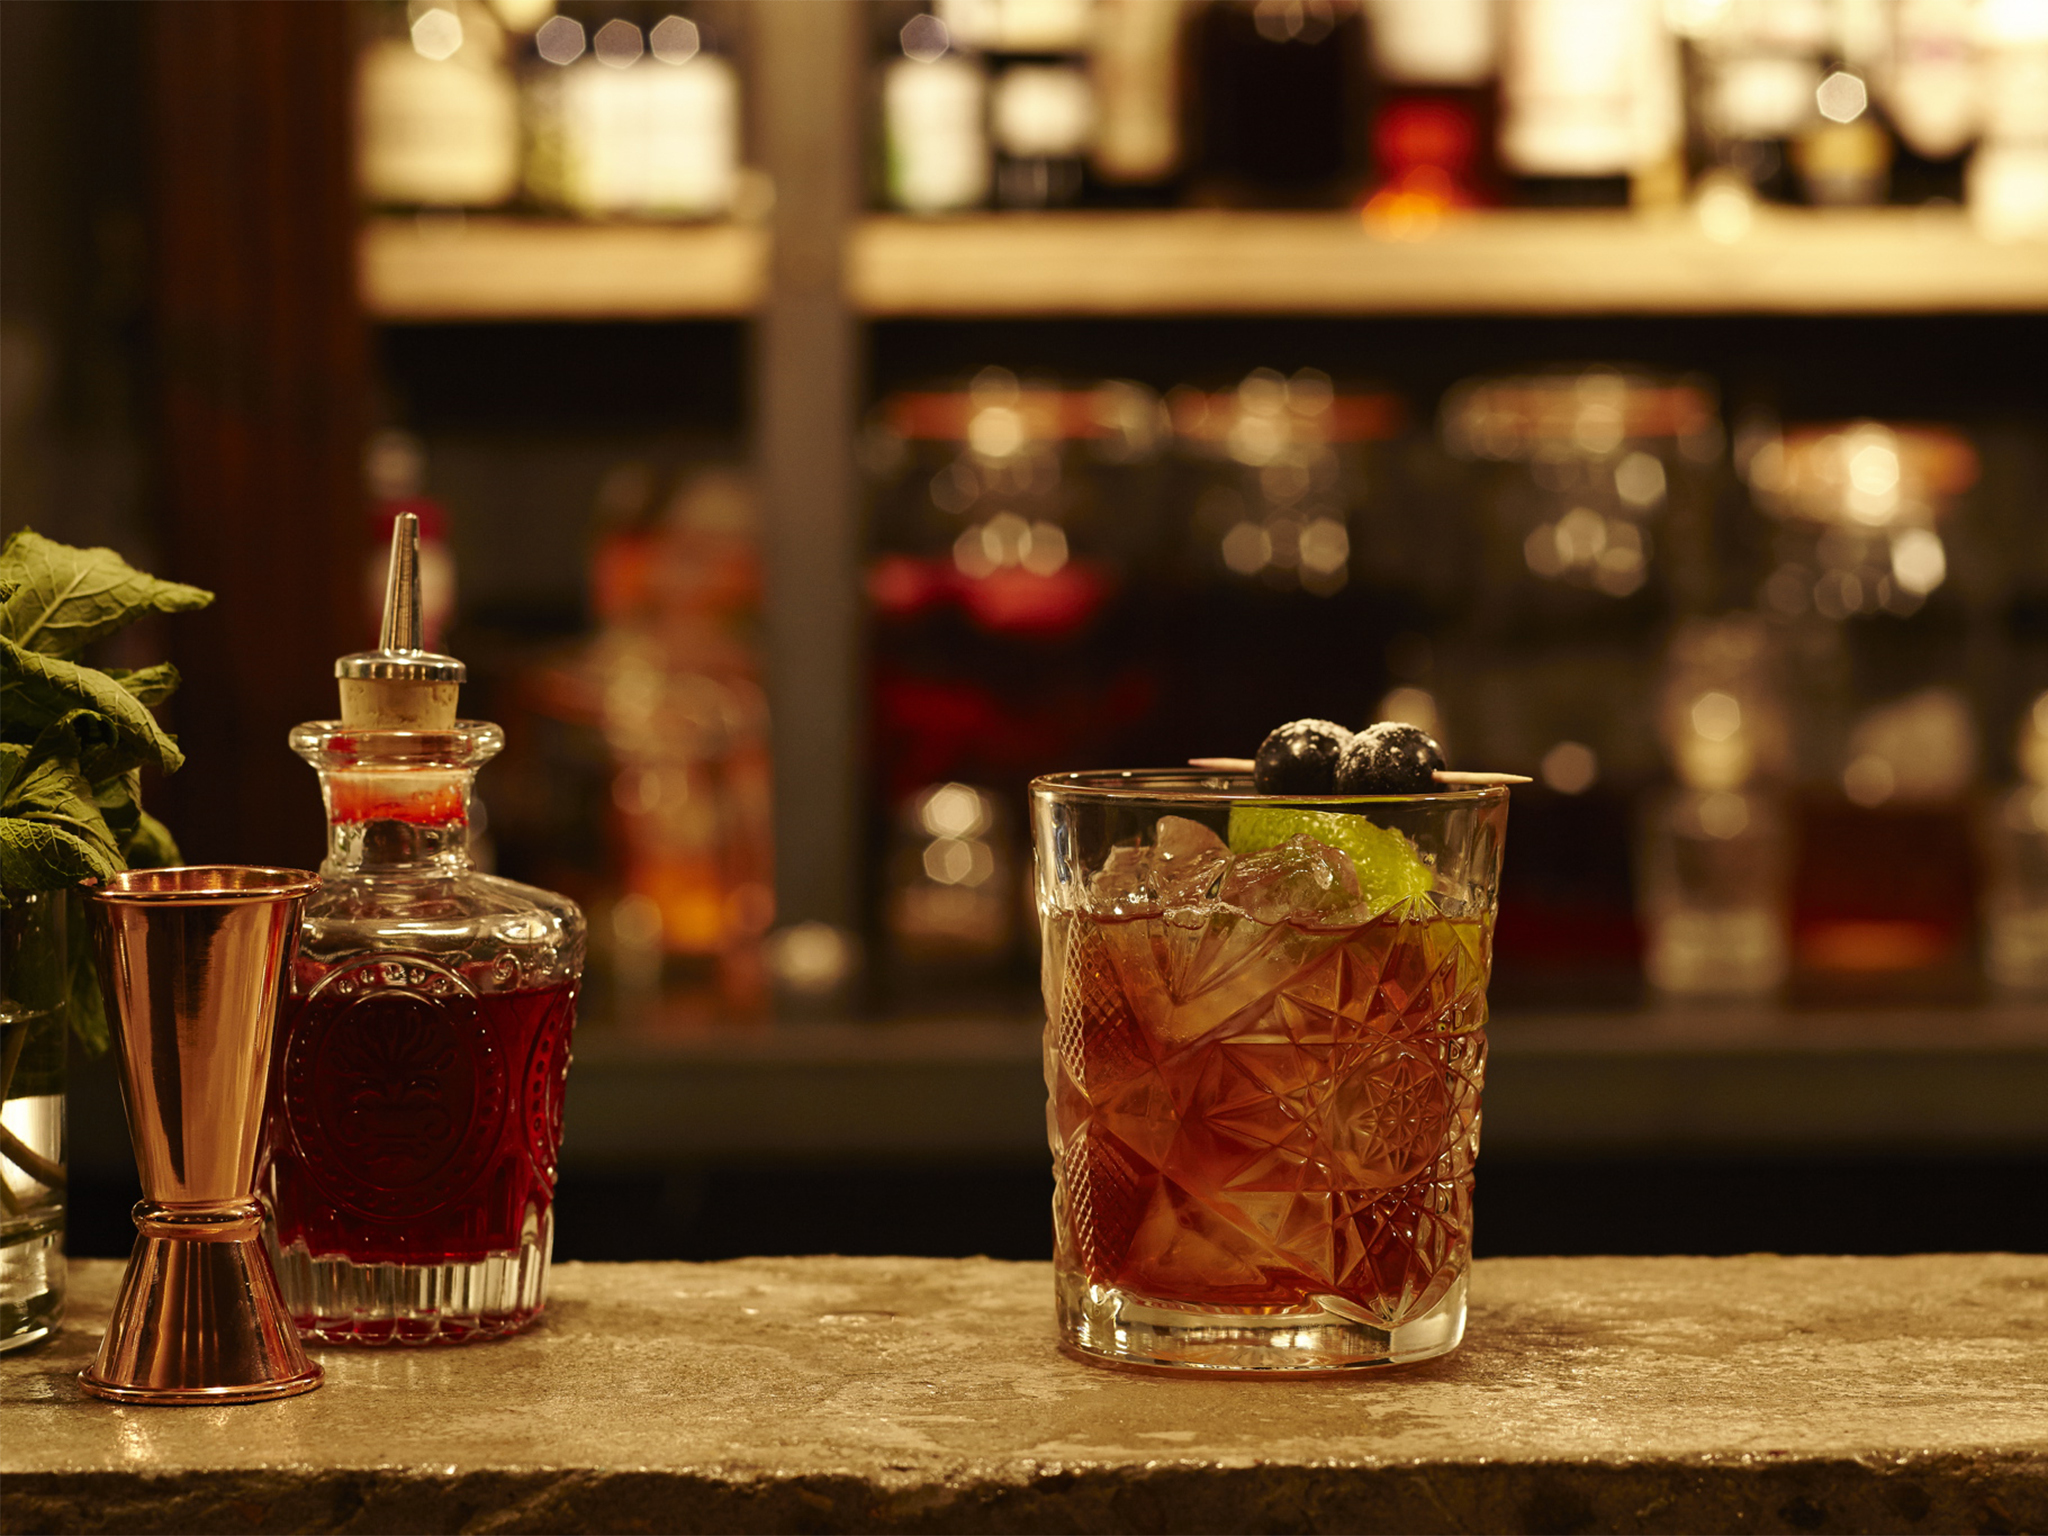 10 Best Whisky Bars In London For A Special Wee Dram